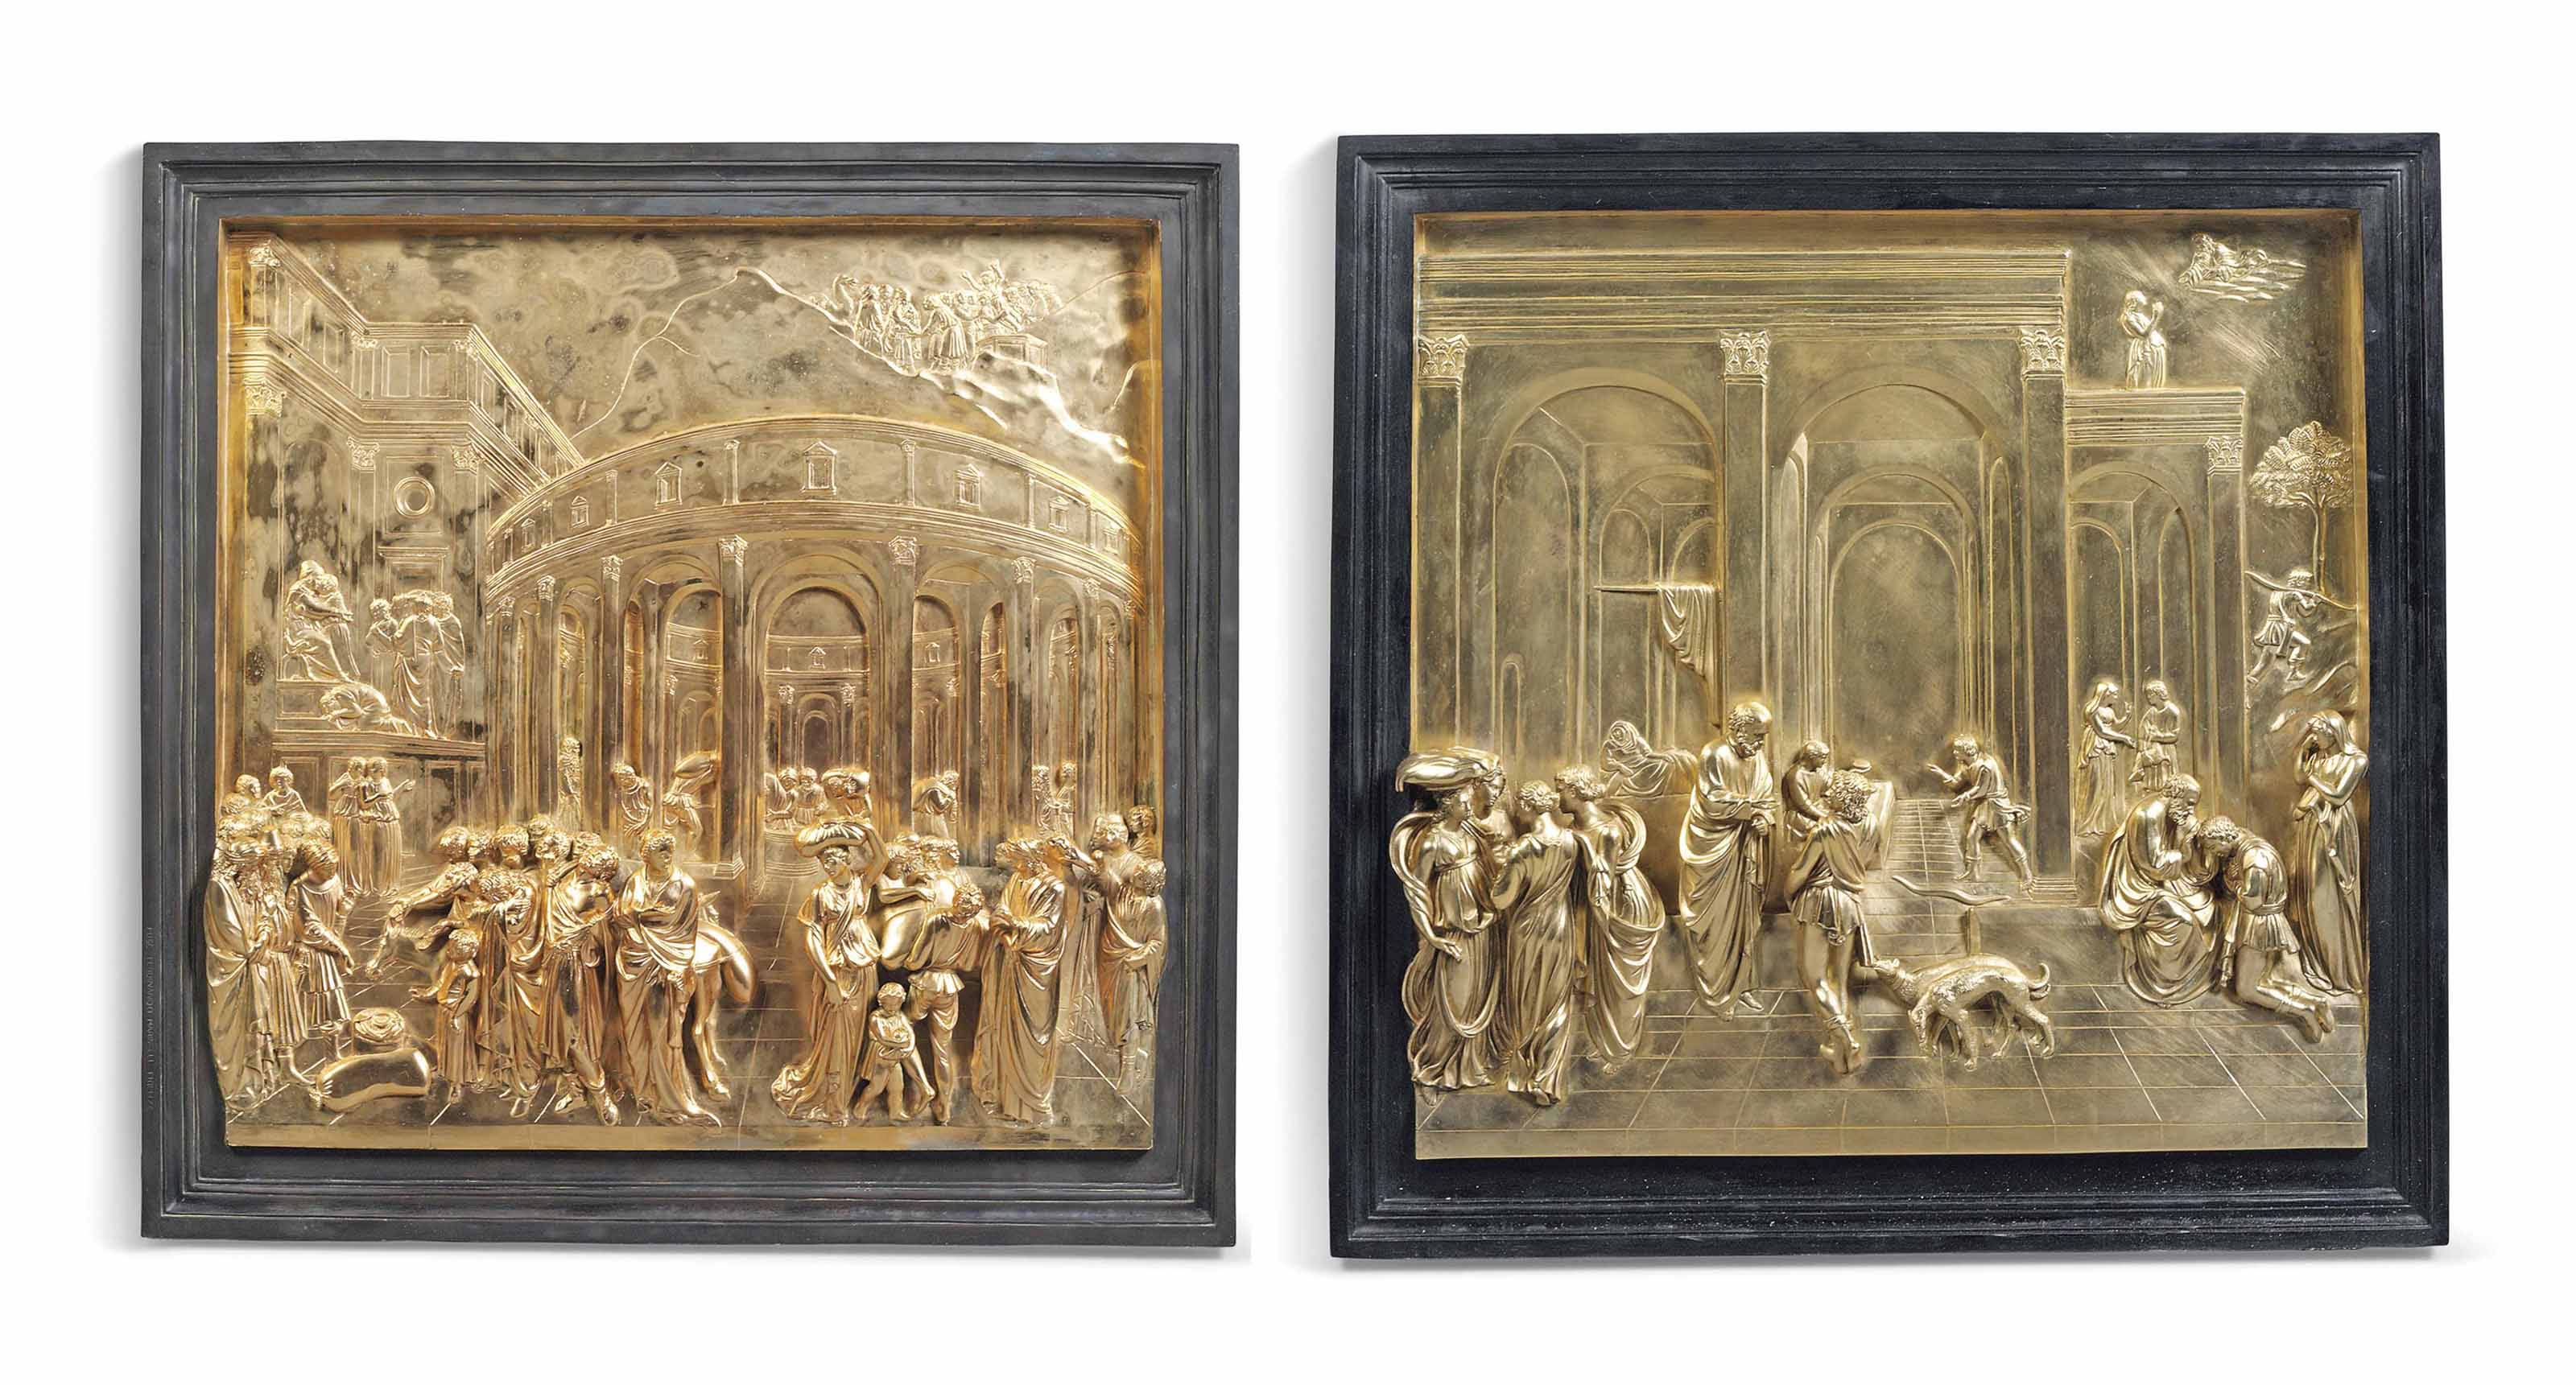 The Gates of Paradise – Lorenzo Ghiberti